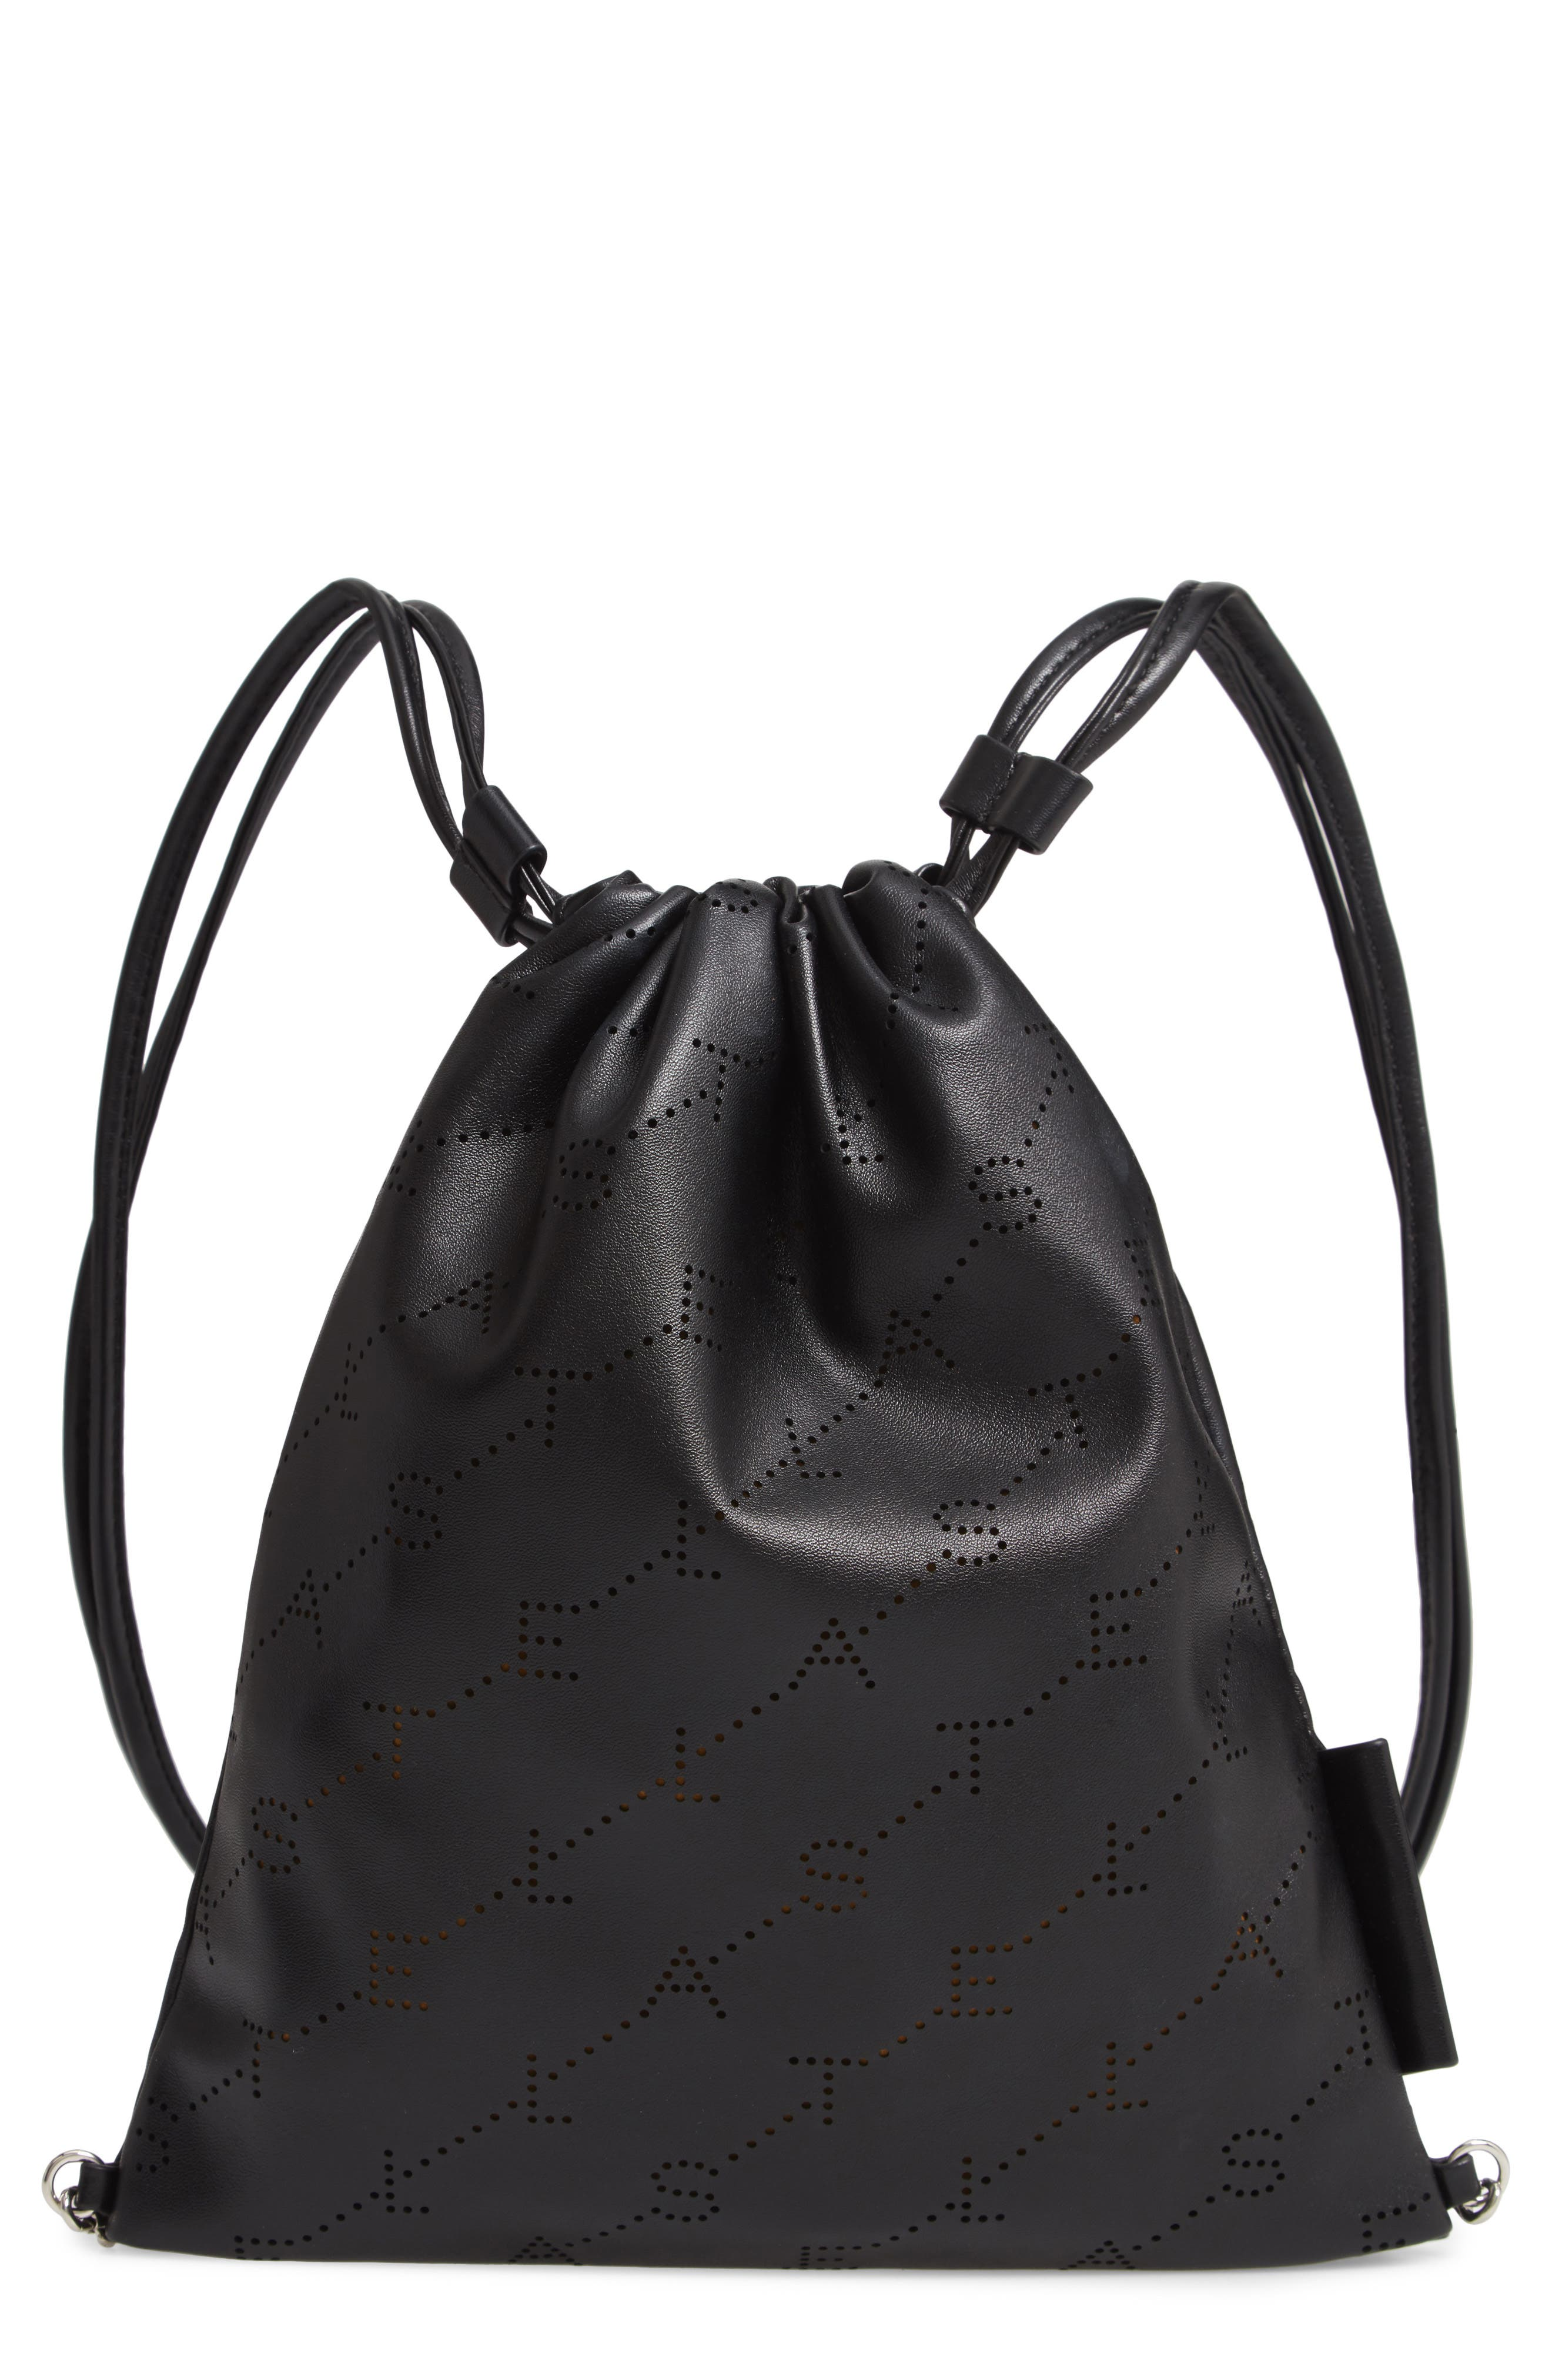 STELLA MCCARTNEY Perforated Logo Mini Faux Leather Drawstring Backpack, Main, color, BLACK